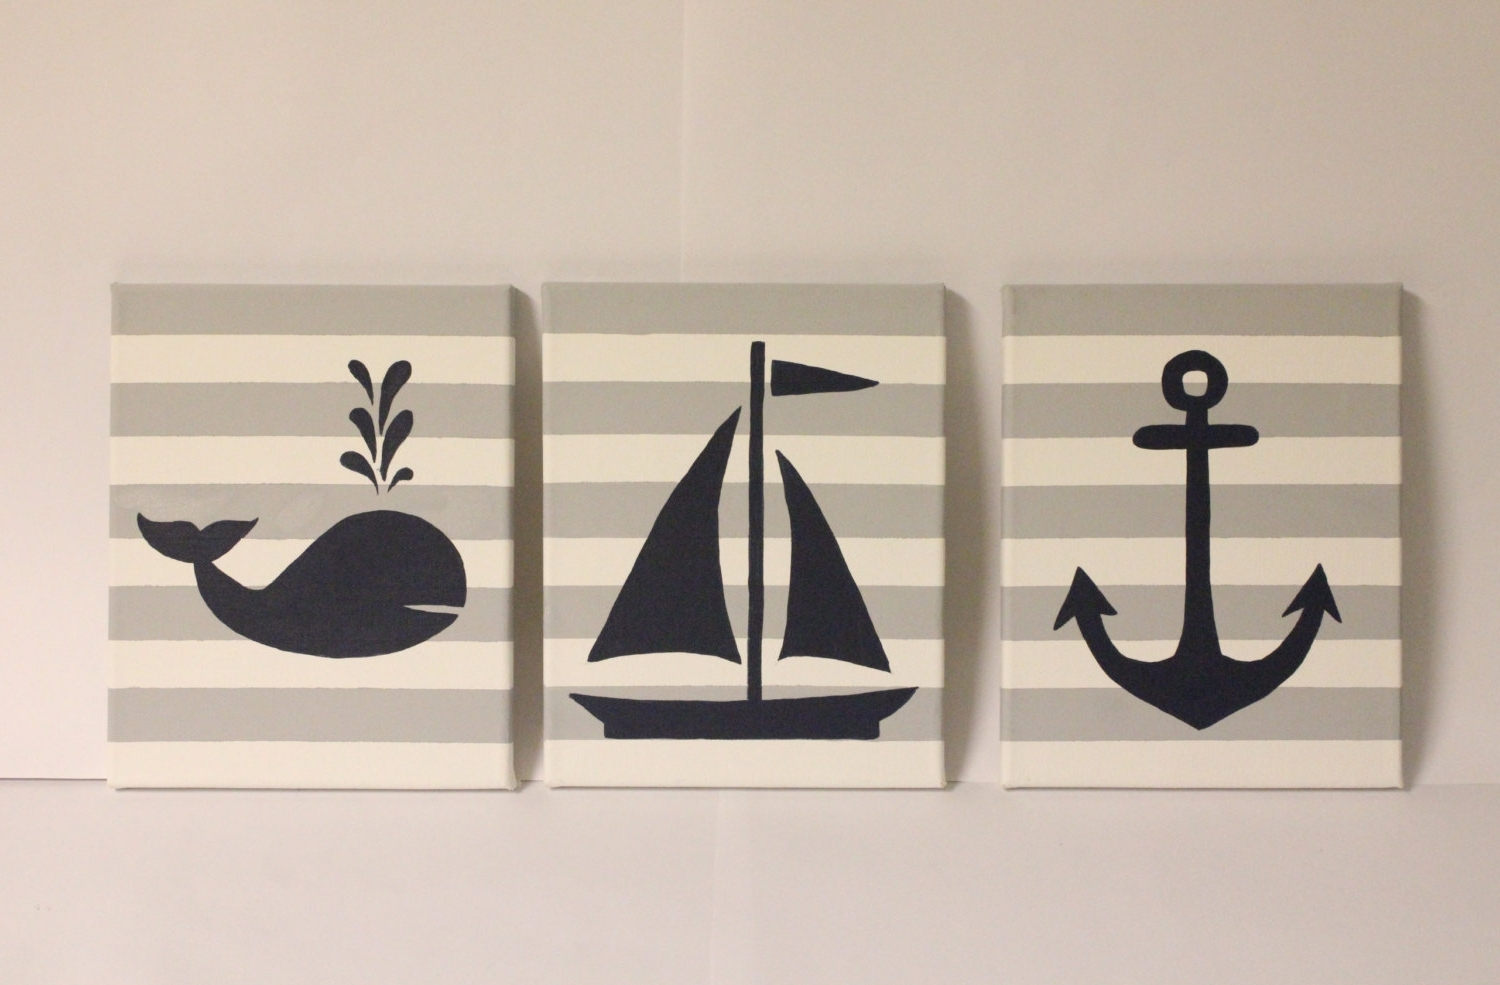 Wall Decor Nautical (View 15 of 15)